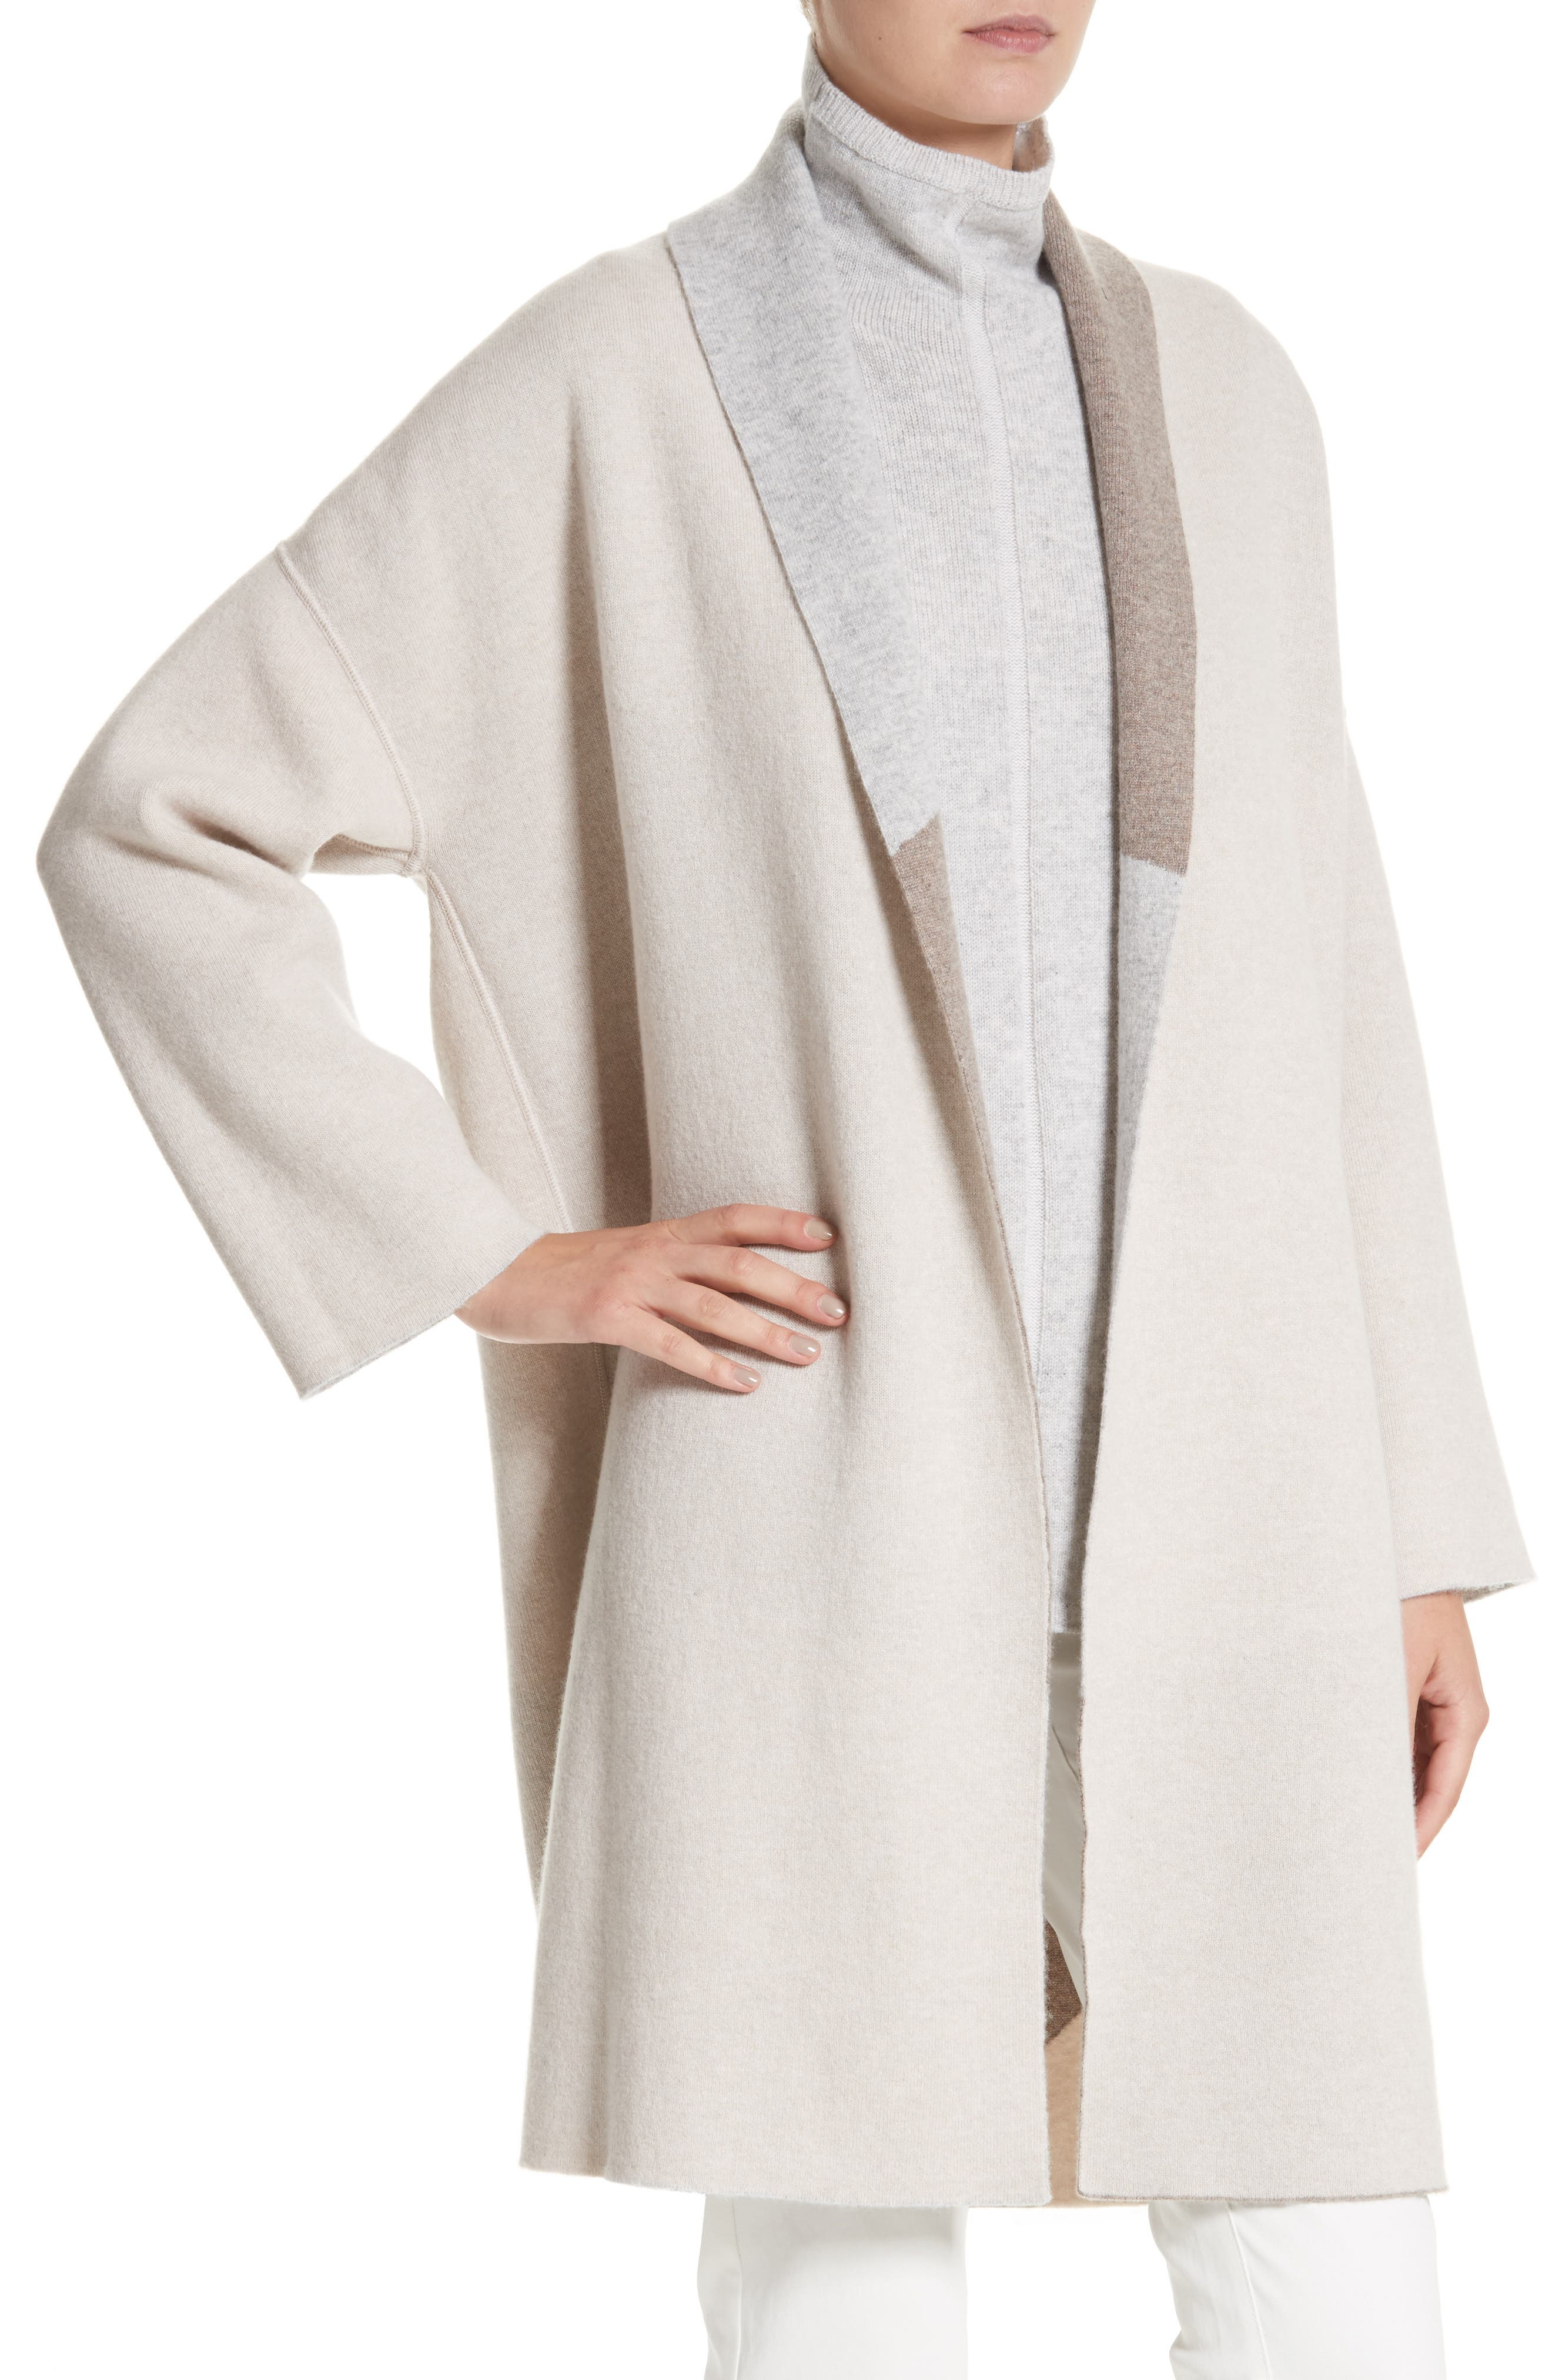 Stretch Cashmere Reversible Felted Colorblock Cardigan,                             Alternate thumbnail 2, color,                             020